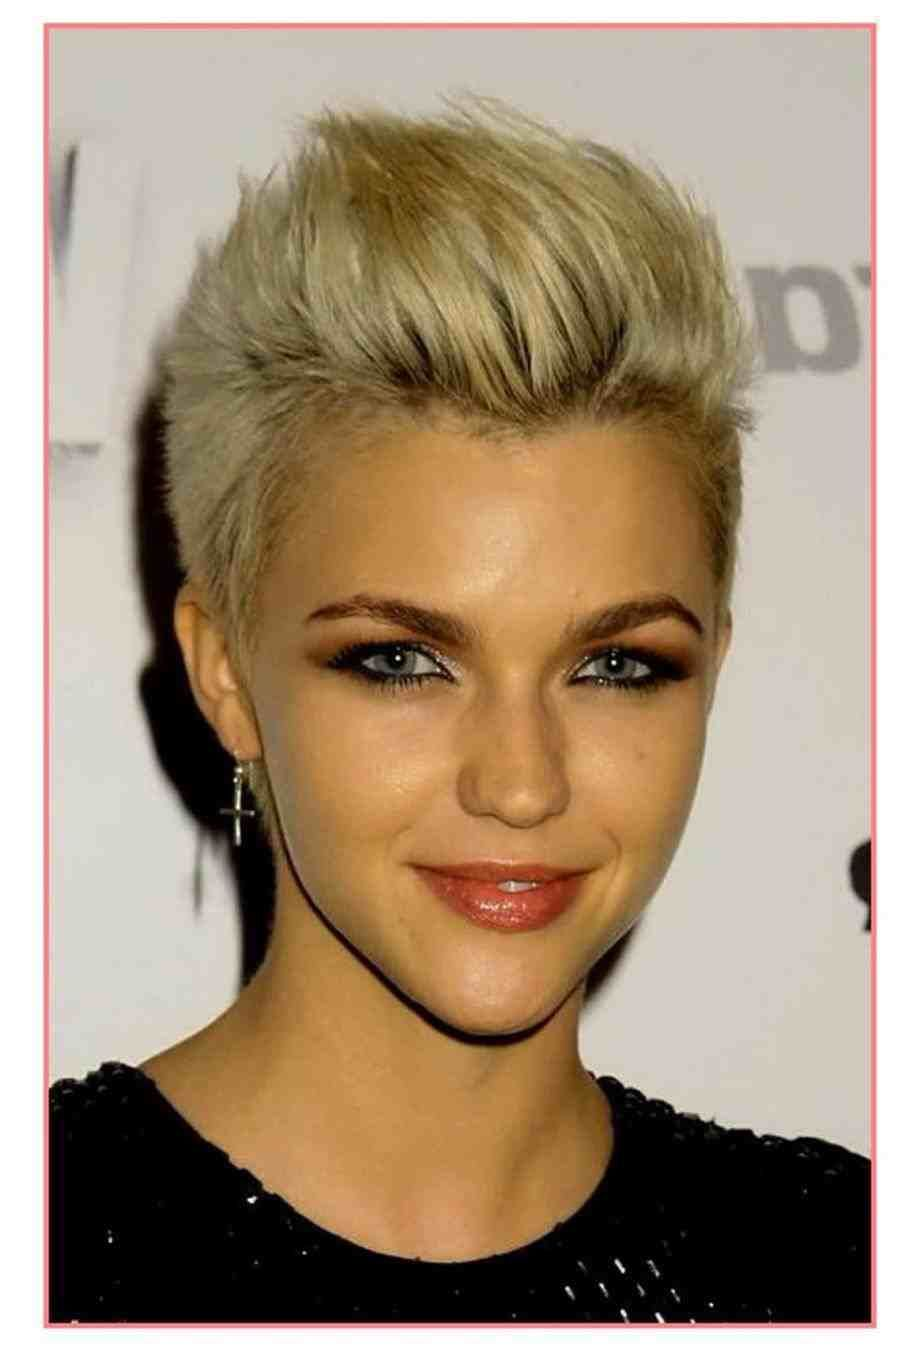 Man Hair Step Cut Haircut Images Images Haircut Ideas For Women And